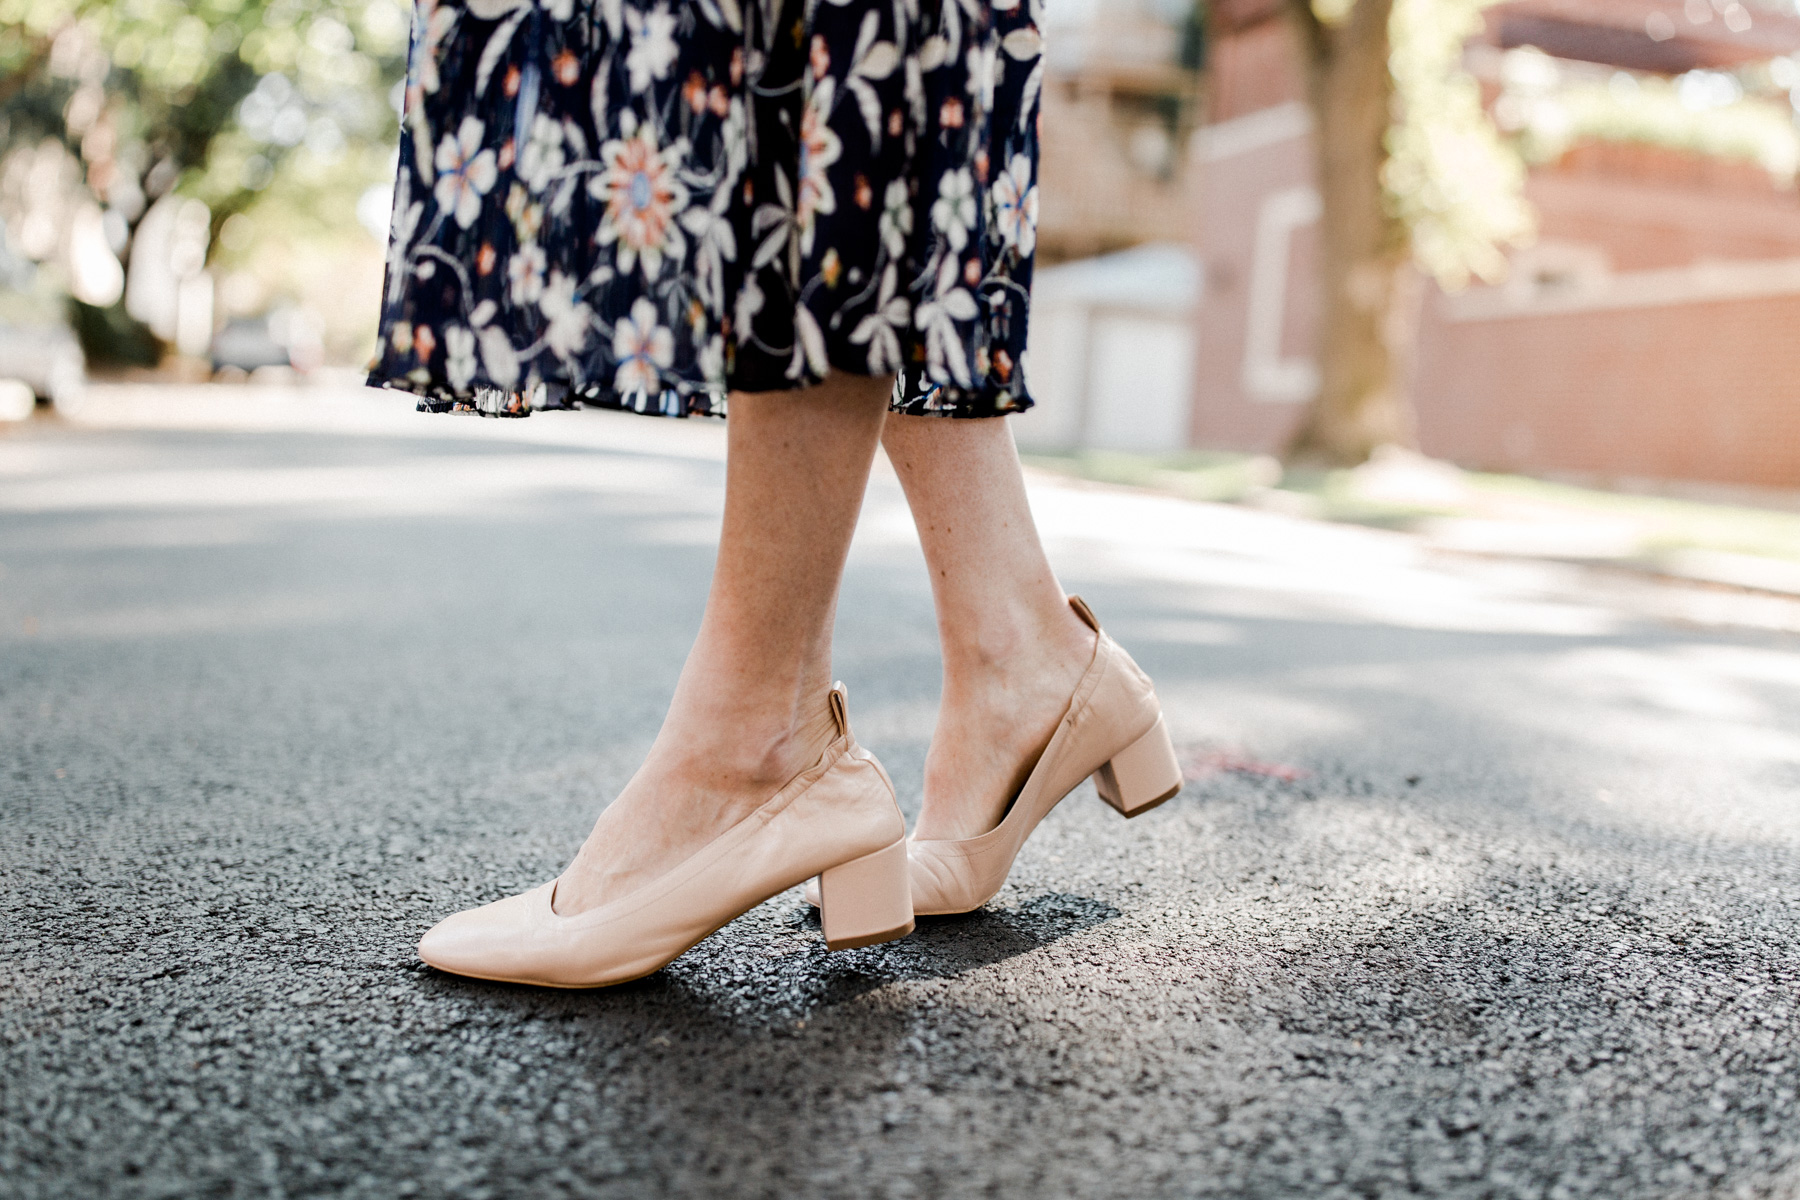 Comfortable preppy pumps